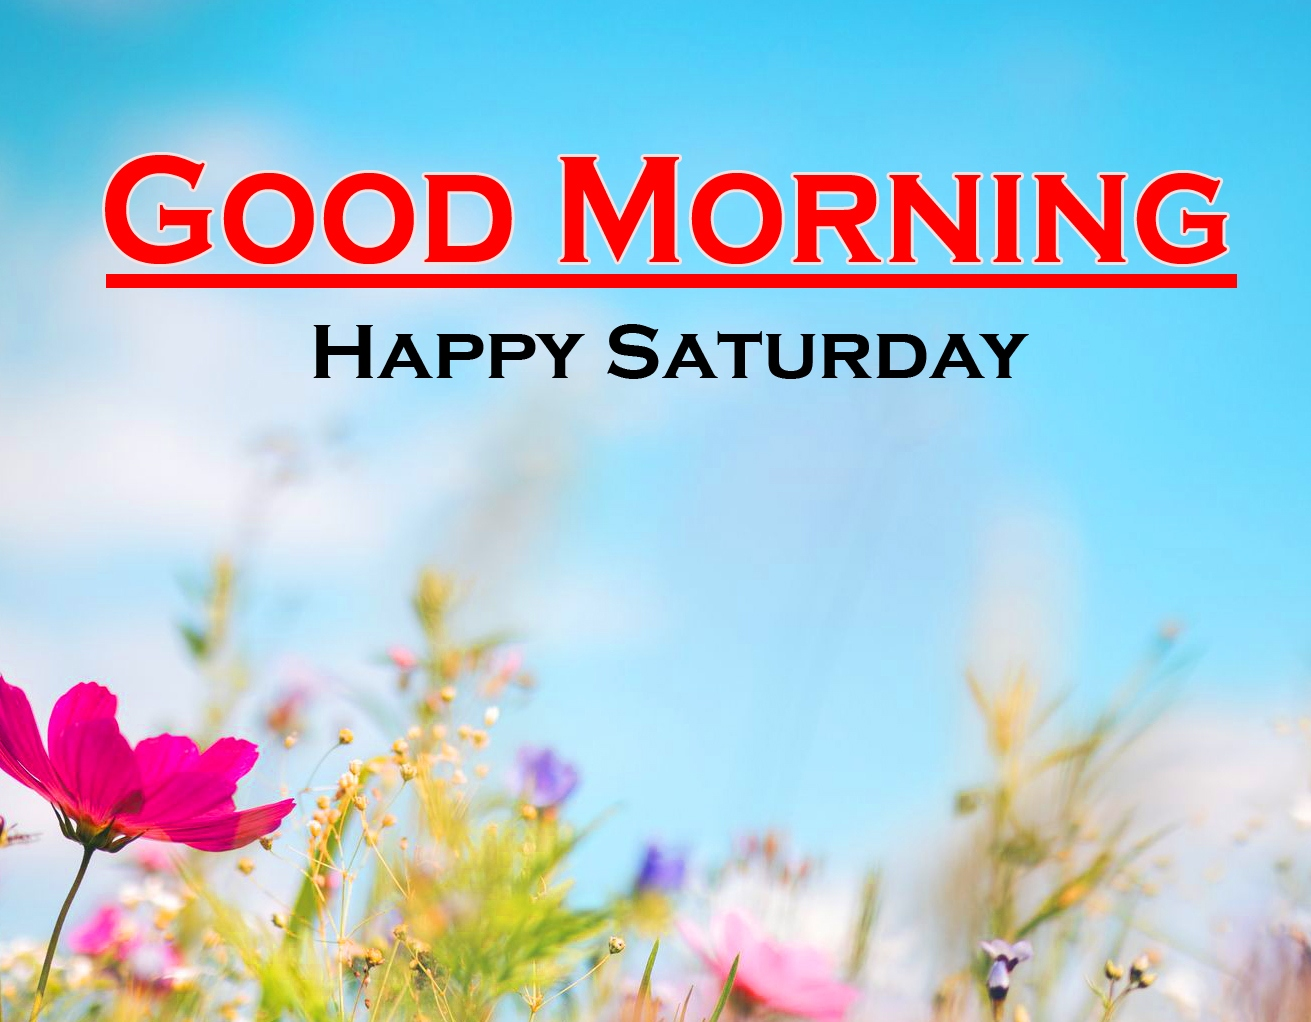 Saturday Good Morning Images Wallpaper Download